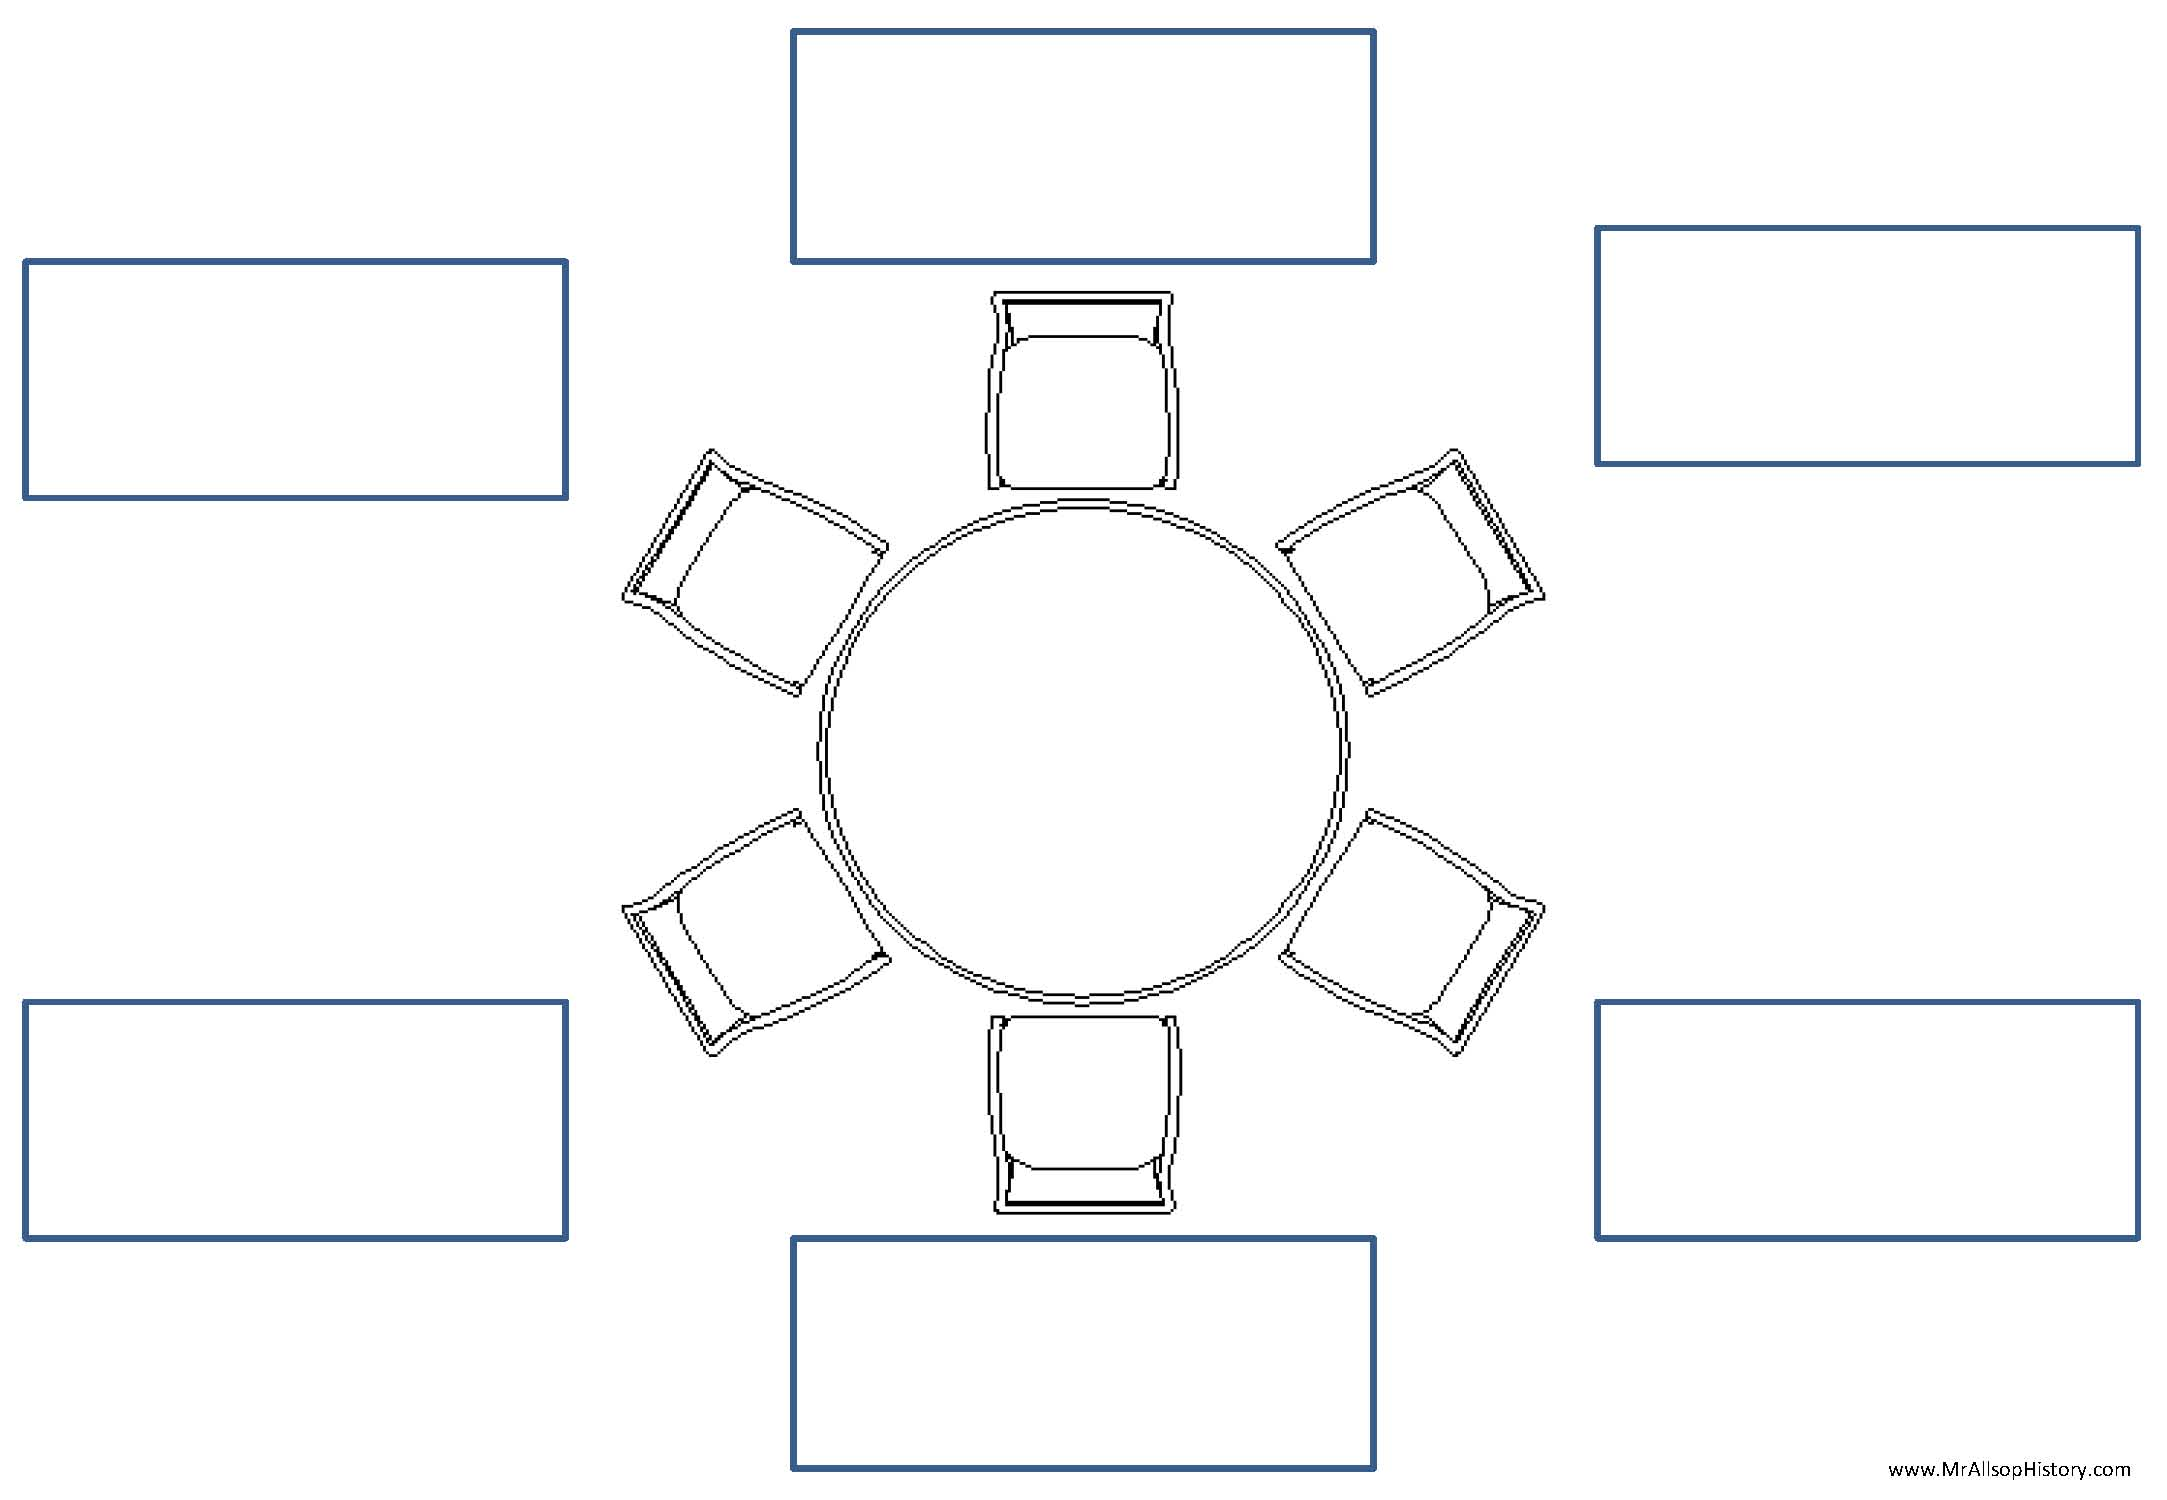 Alliances seating plan